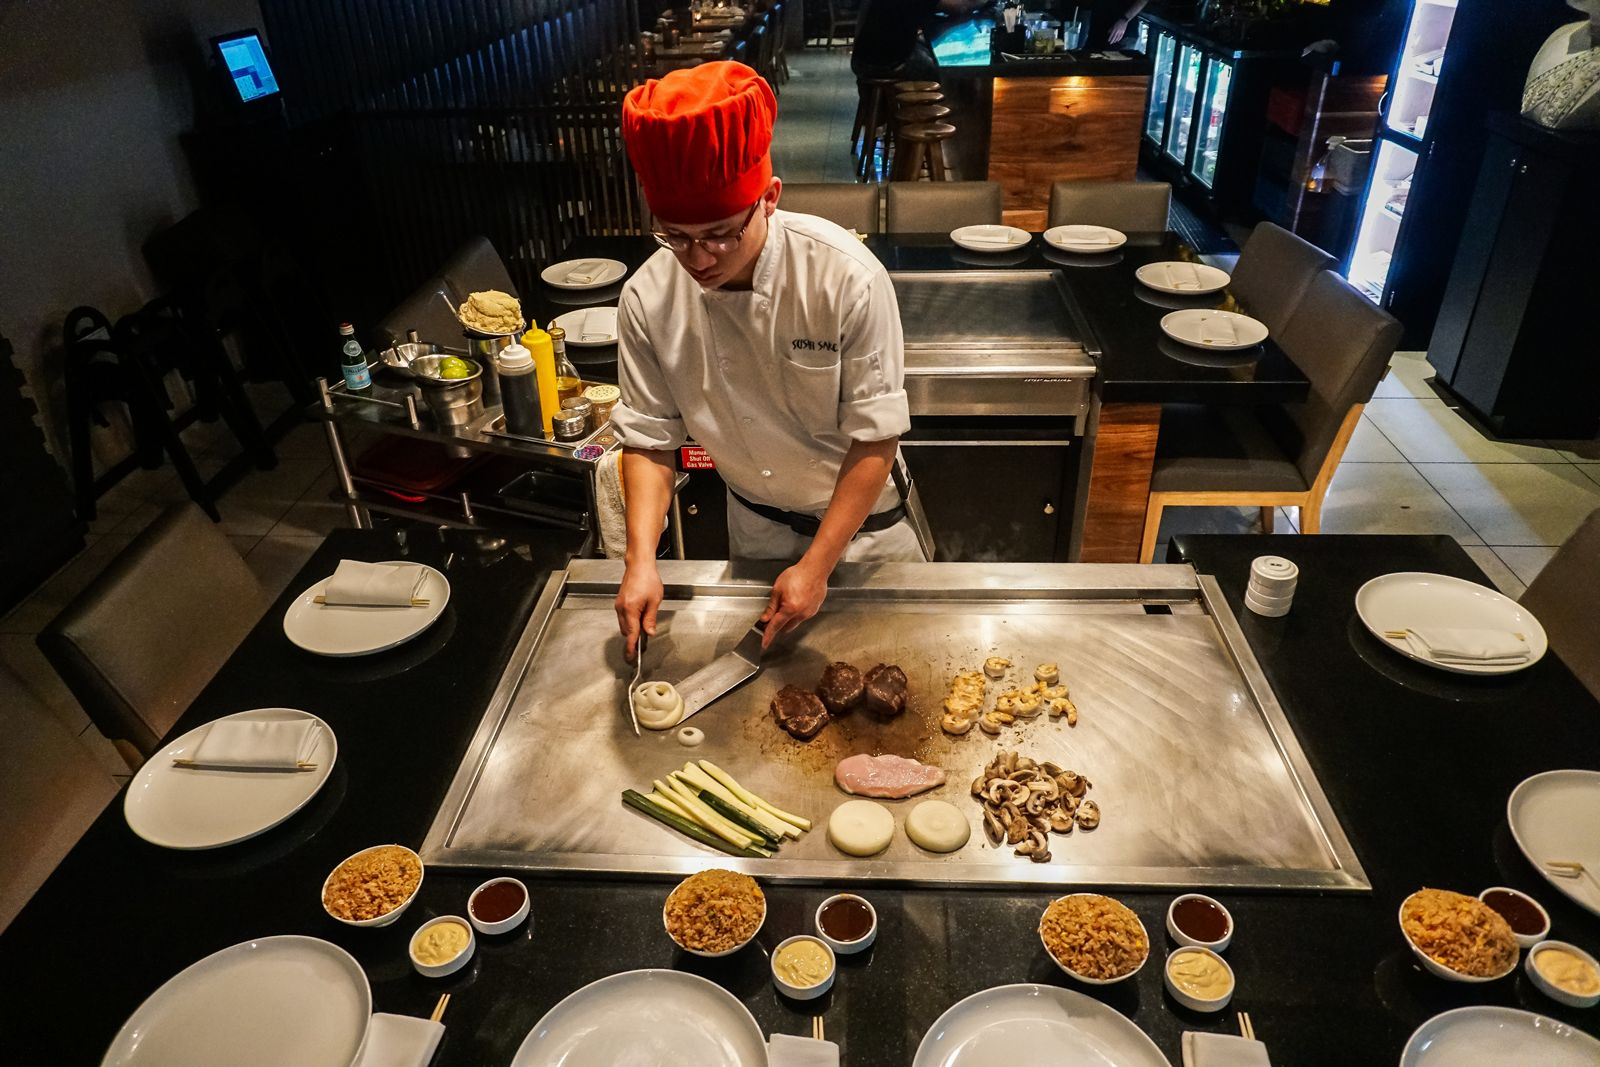 Miami-Based Sushi Hotspot Gears up for Growth in 2020